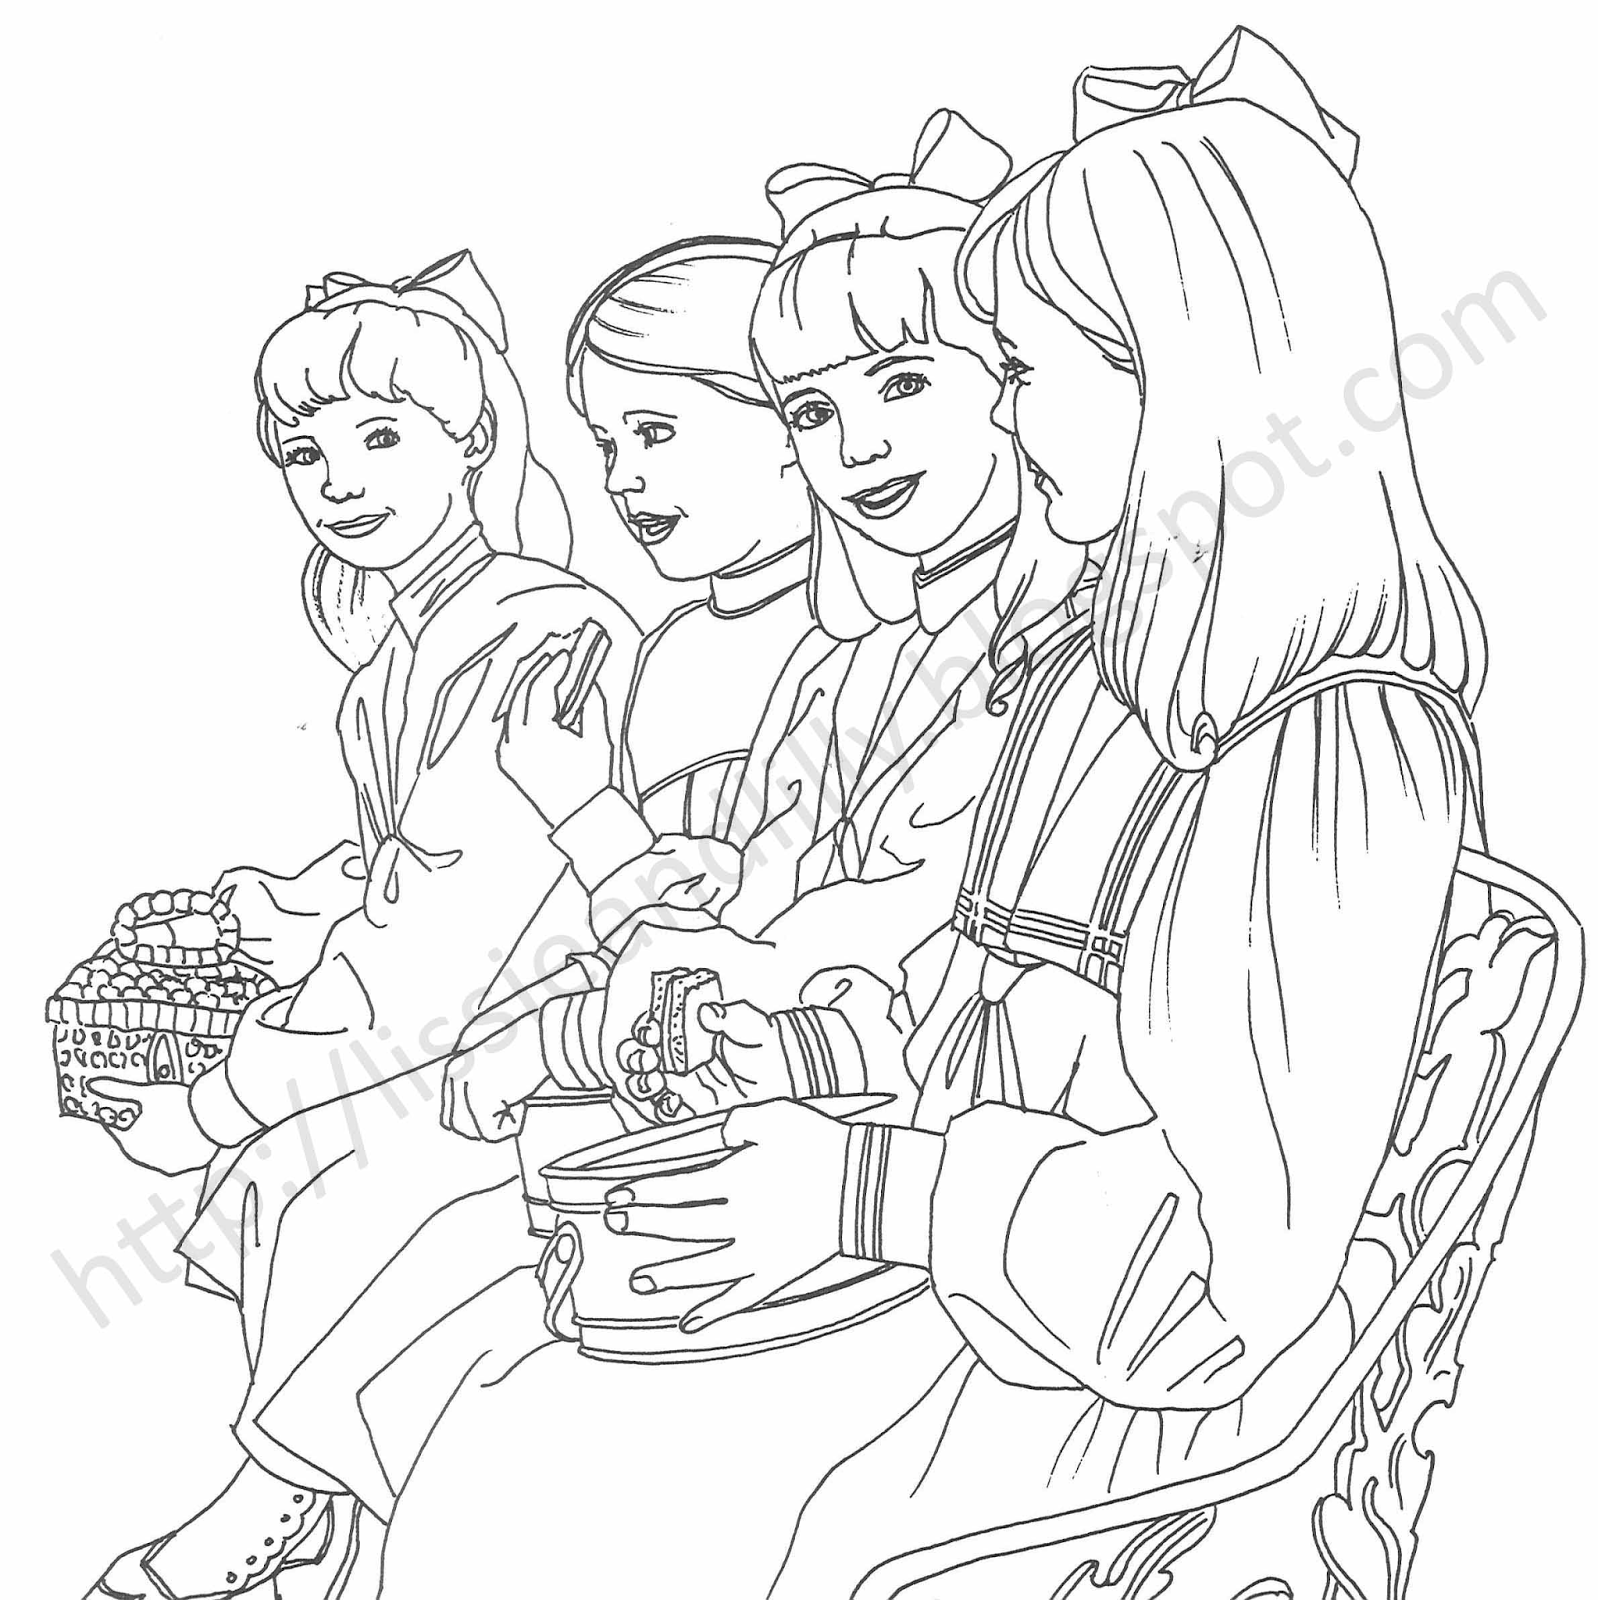 coloring pages of girls realistic photo pic1 8jpg angel coloring pages coloring pages of girls pages coloring realistic